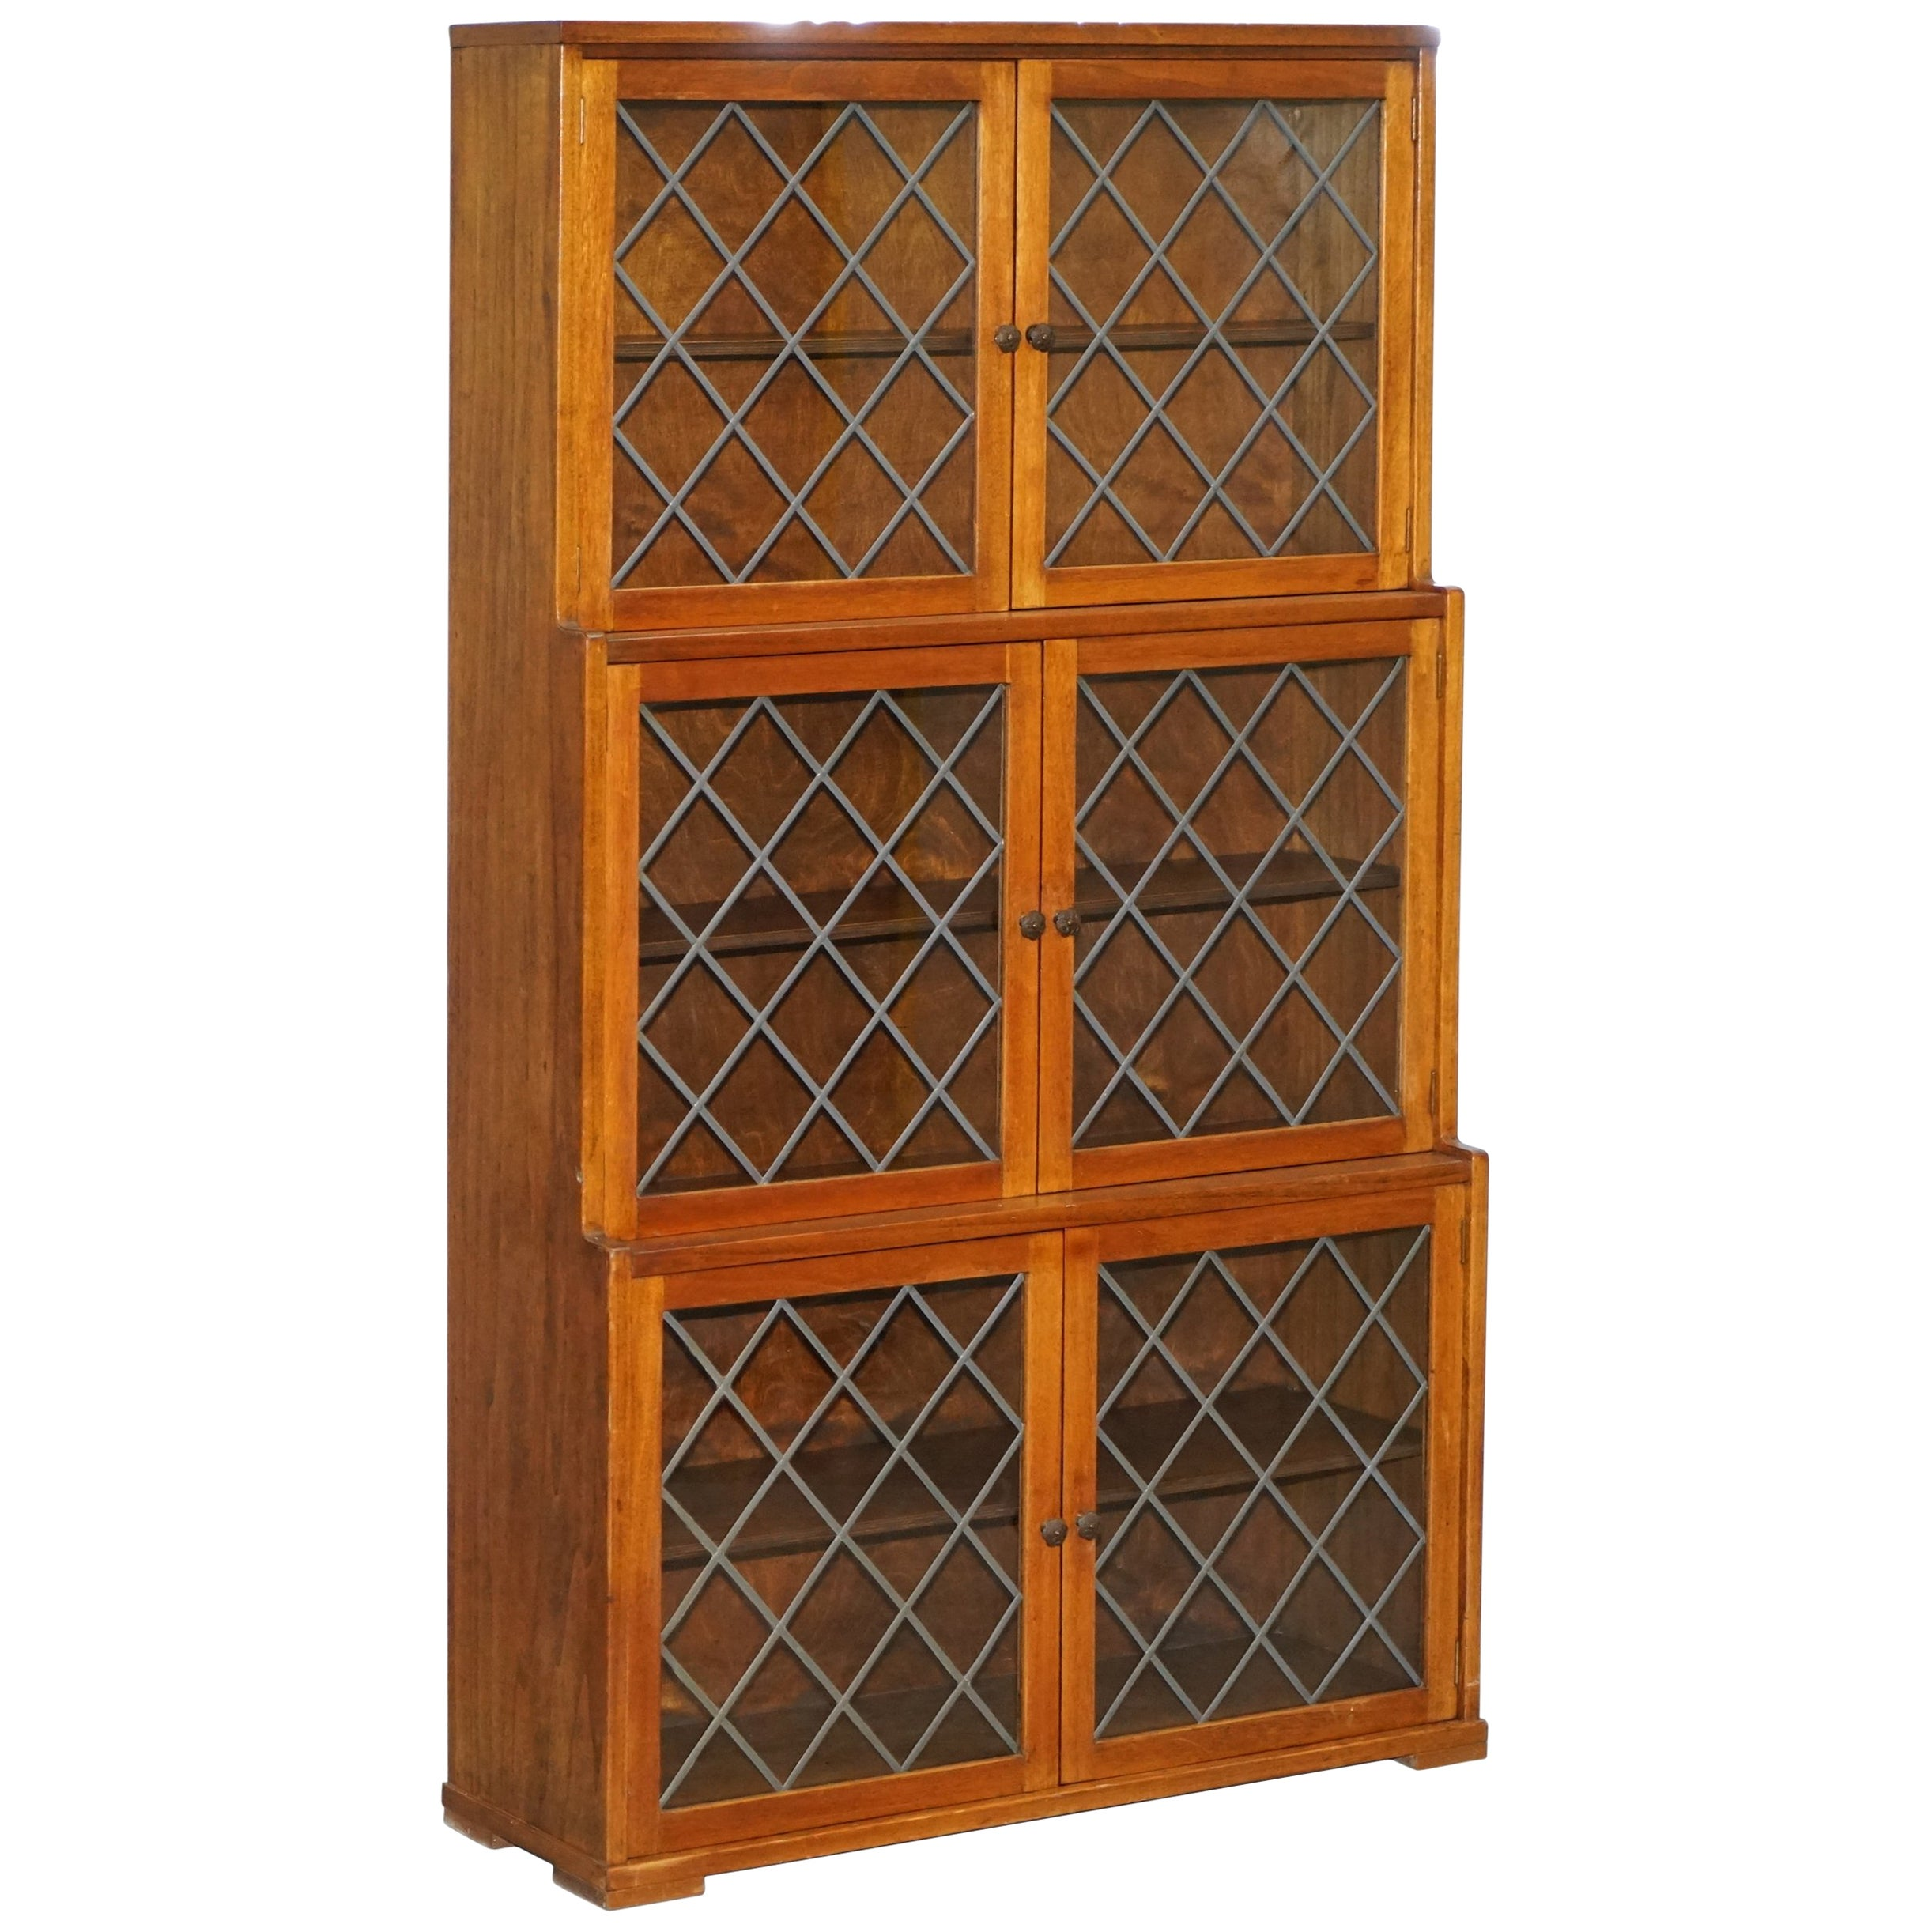 Vintage Bookcase Lovely Vintage Mahogany Three Tiered Waterfall Bookcase With Lead Lined Glass